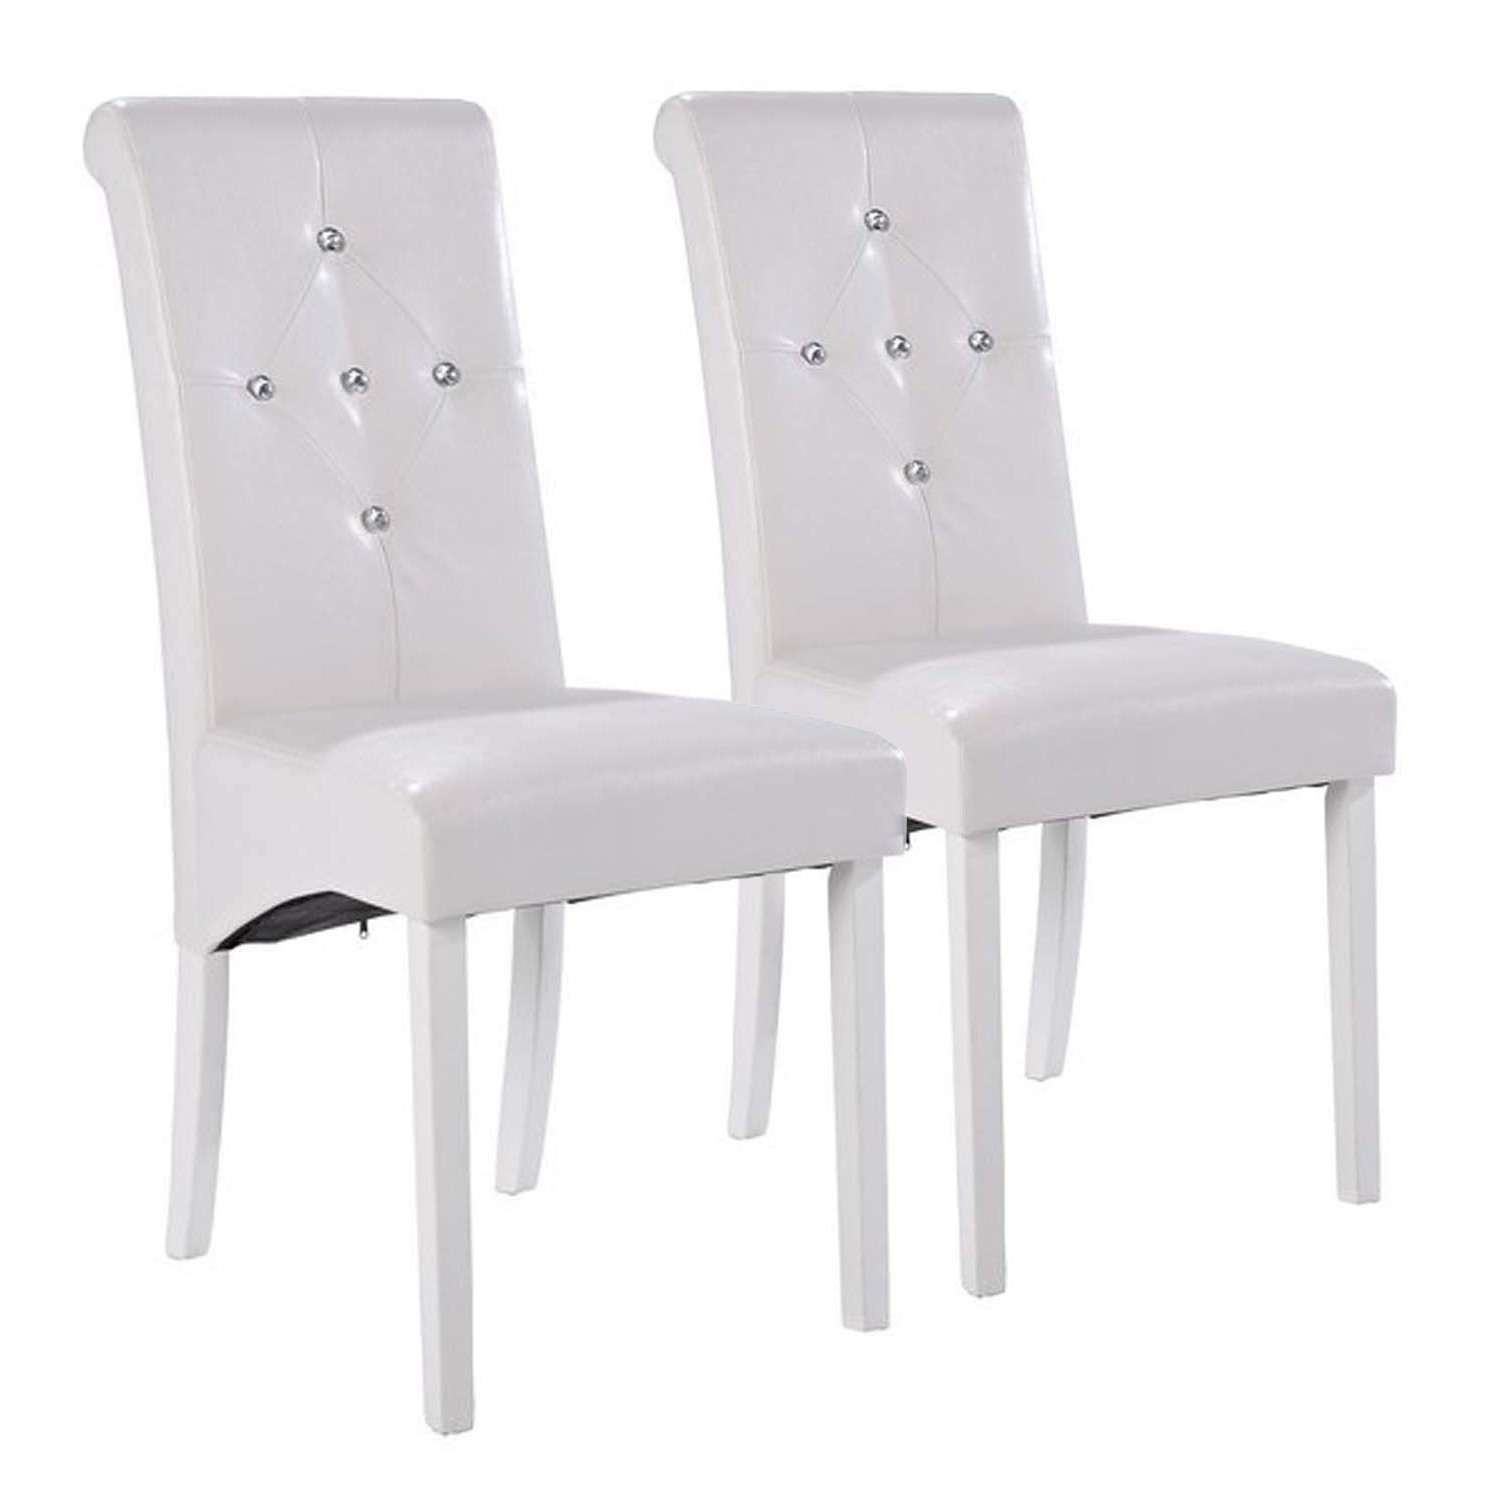 lpd monroe pair of diamante dining chairs in white | furniture123